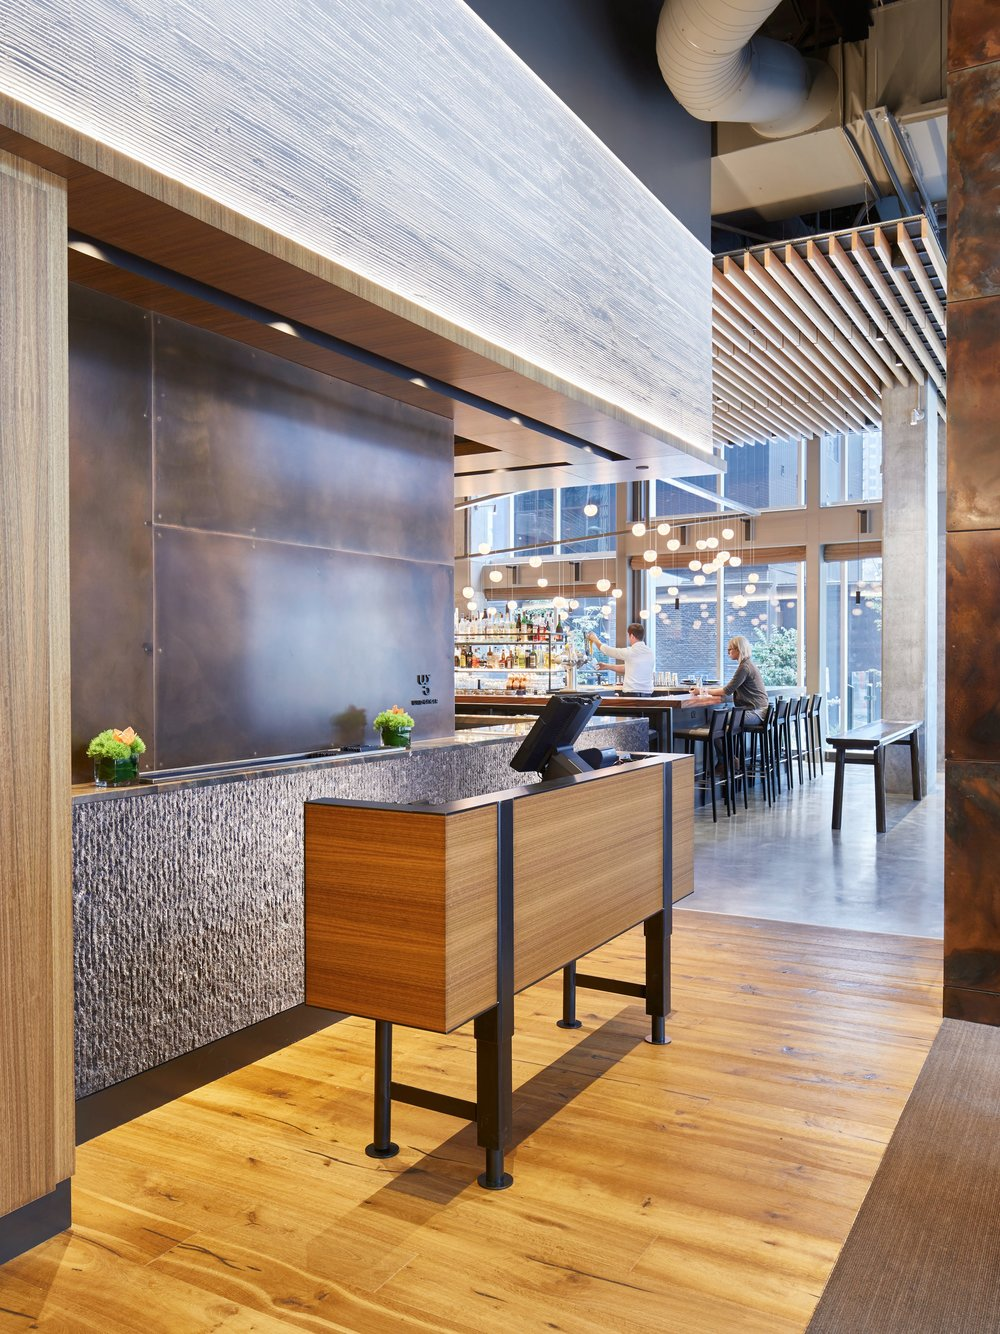 - Wild Ginger's third location was revealed to the public in August of 2018. Just a mile from the flagship downtown, Wild Ginger McKenzie (named after the luxury apartment building it calls home) planted roots in Seattle's bustling South Lake Union Neighborhood.